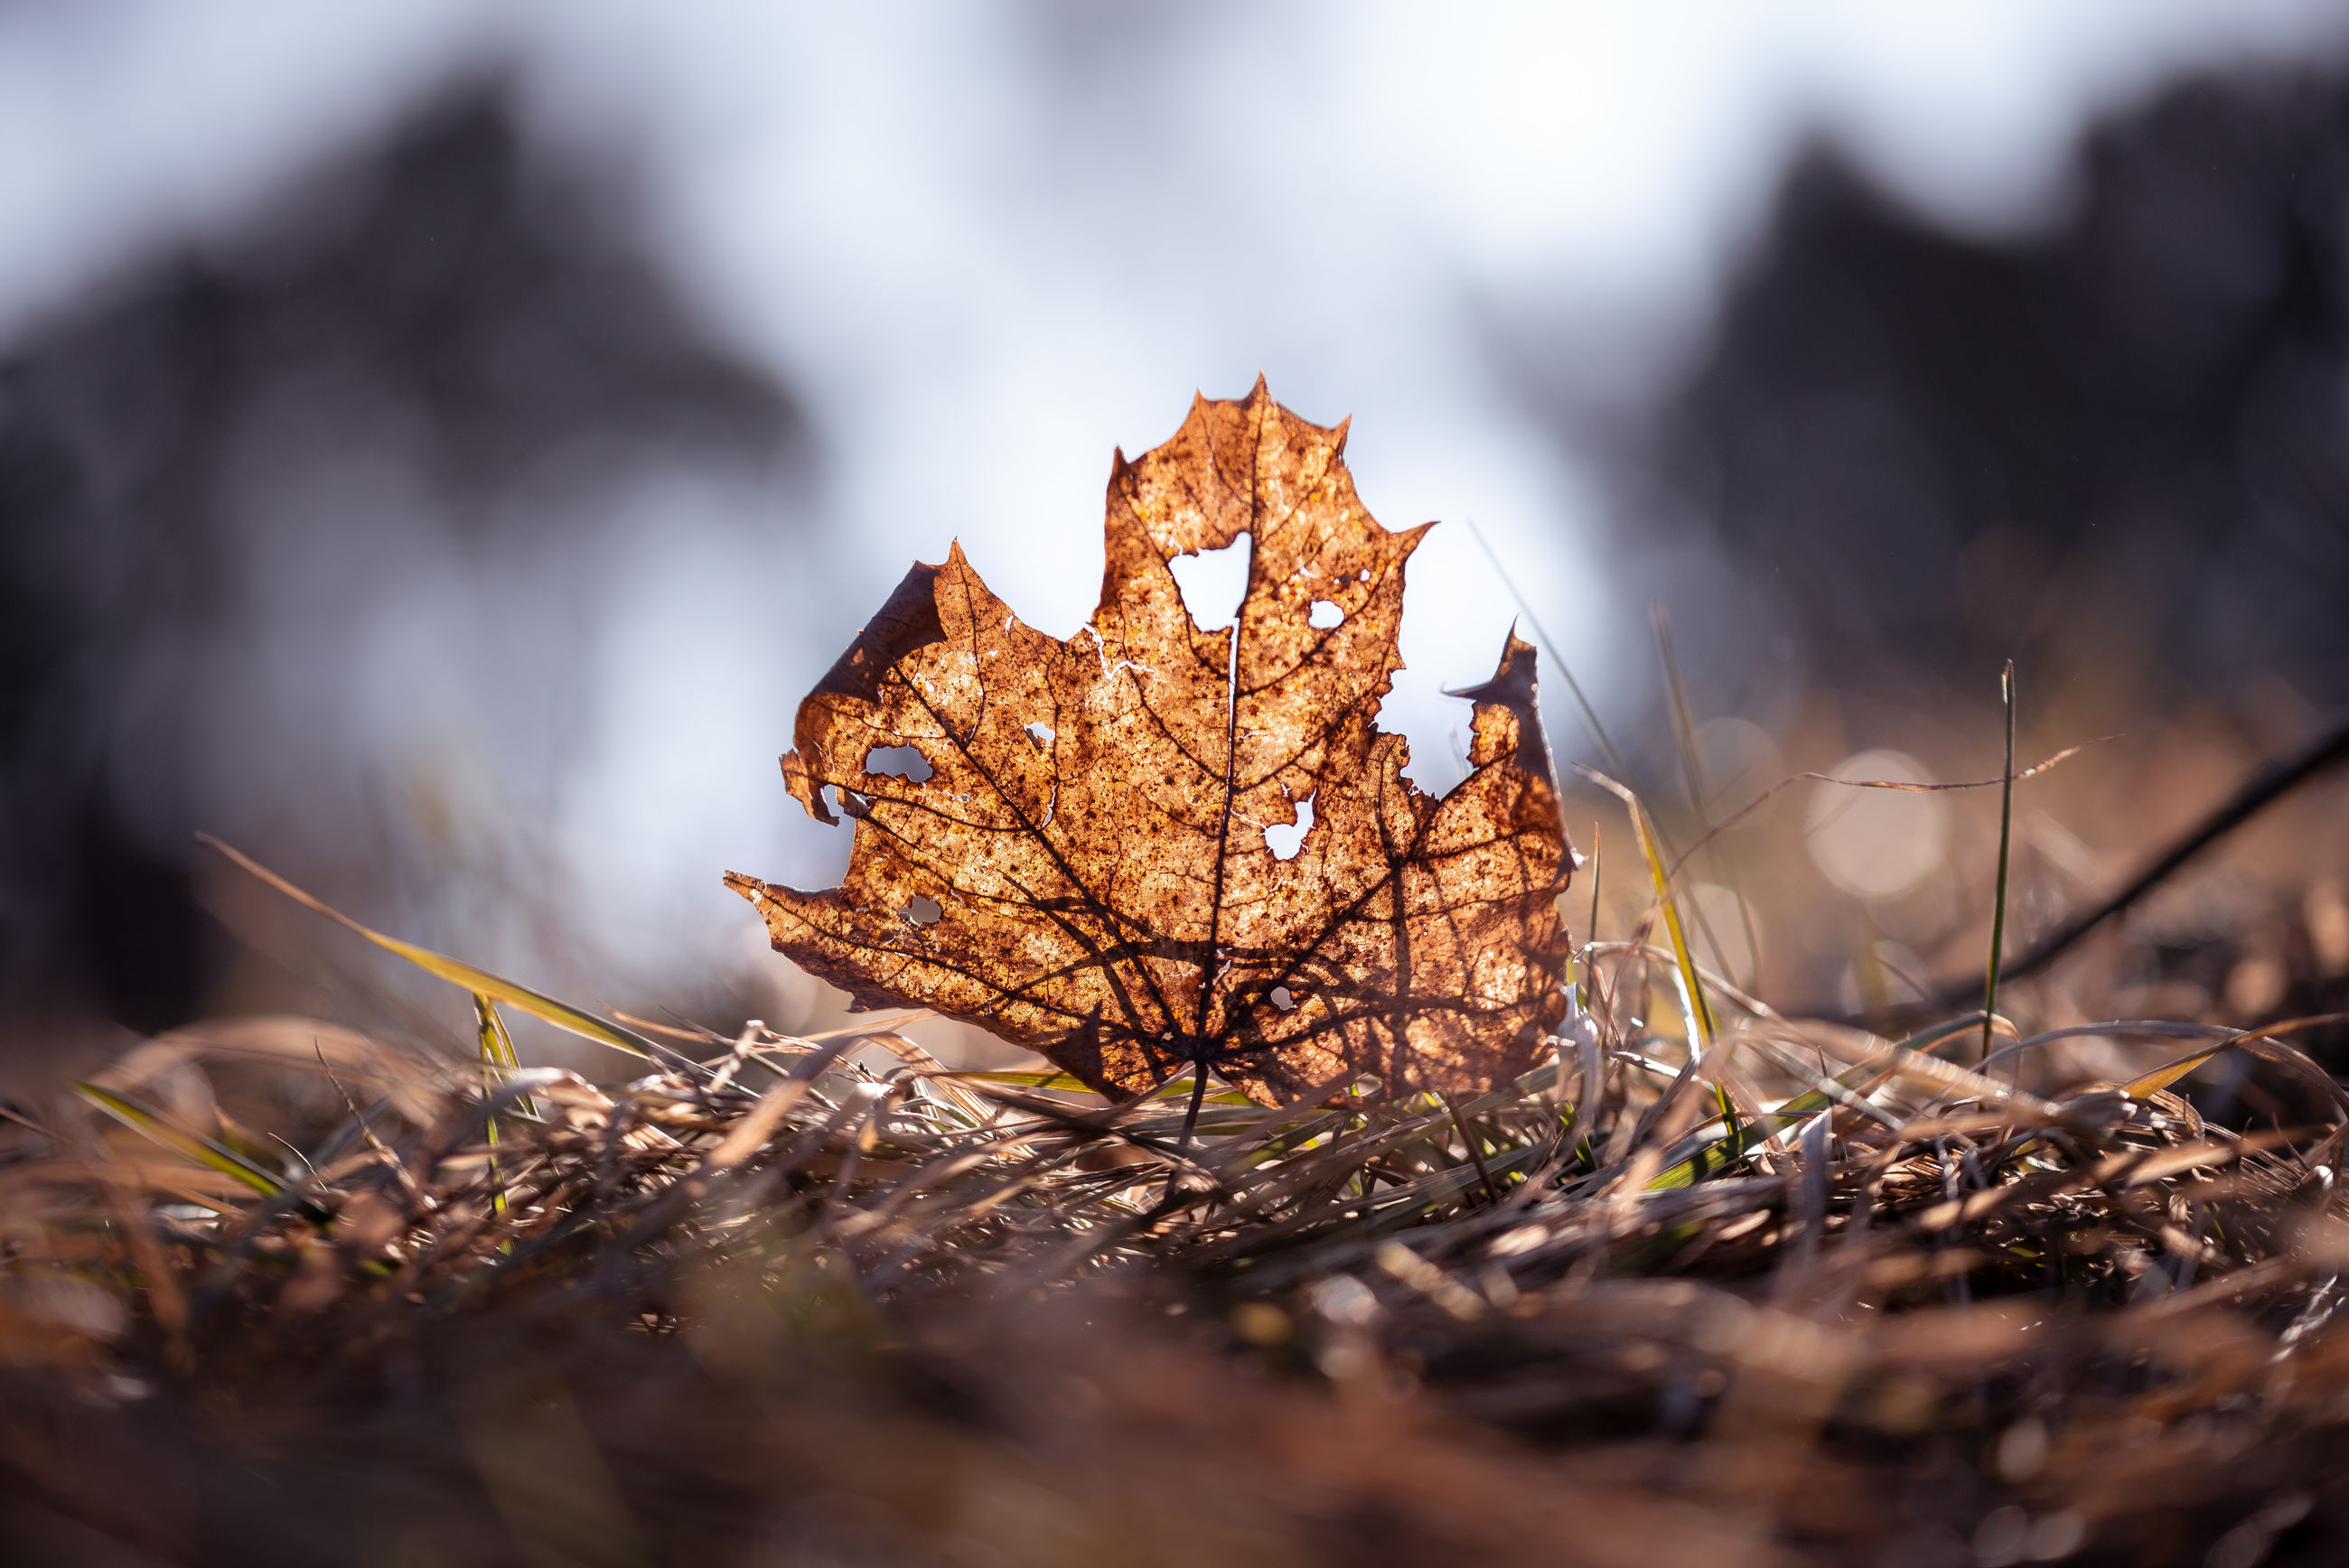 selective focus, nature, plant, dry, close-up, autumn, plant part, leaf, land, day, no people, field, beauty in nature, tranquility, brown, change, outdoors, tree, vulnerability, fragility, leaves, dried, surface level, natural condition, maple leaf